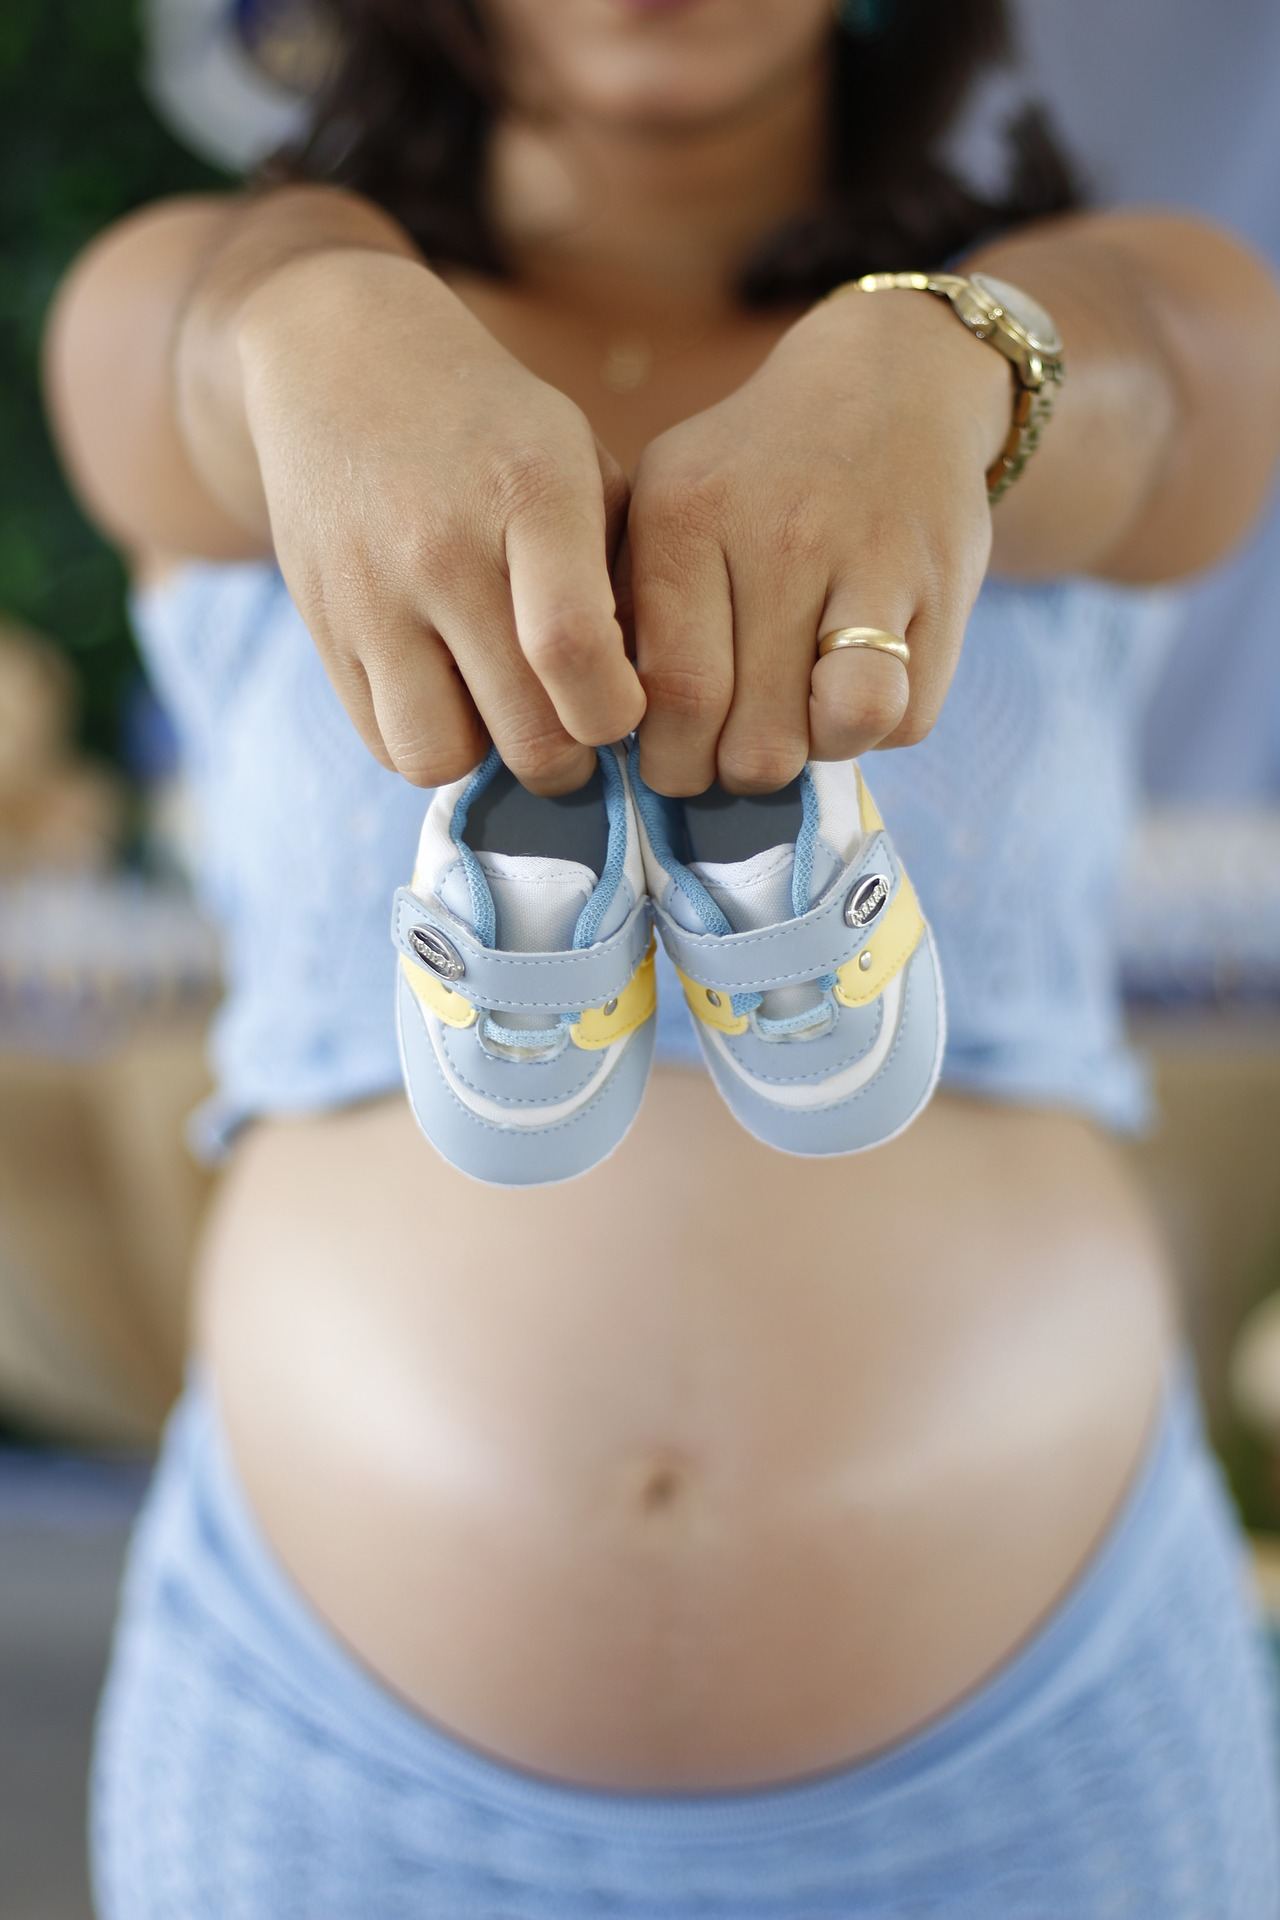 How Does Surrogacy Work?